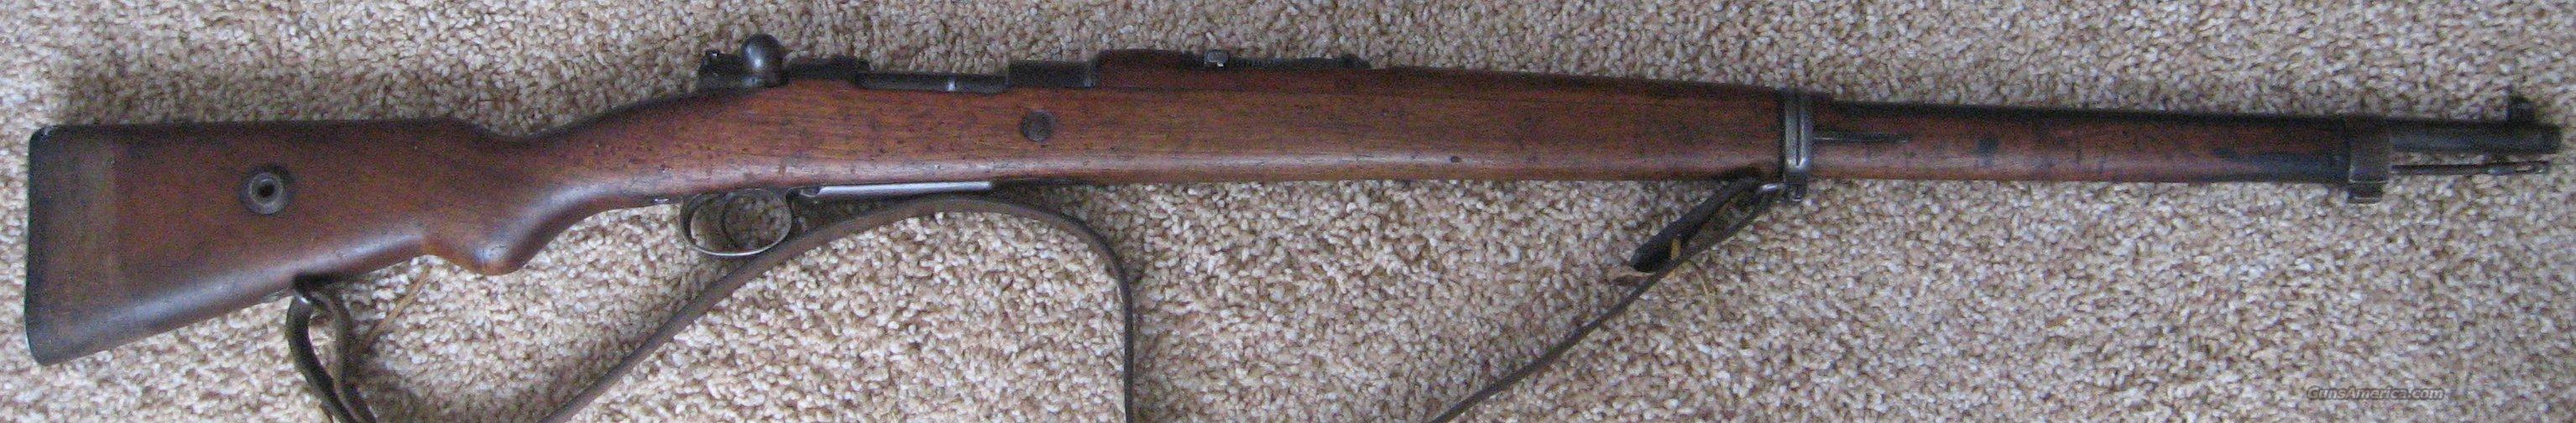 Model 1893 Mauser-Oberndorf military  Guns > Rifles > Antique (Pre-1899) Rifles - Ctg. Misc.